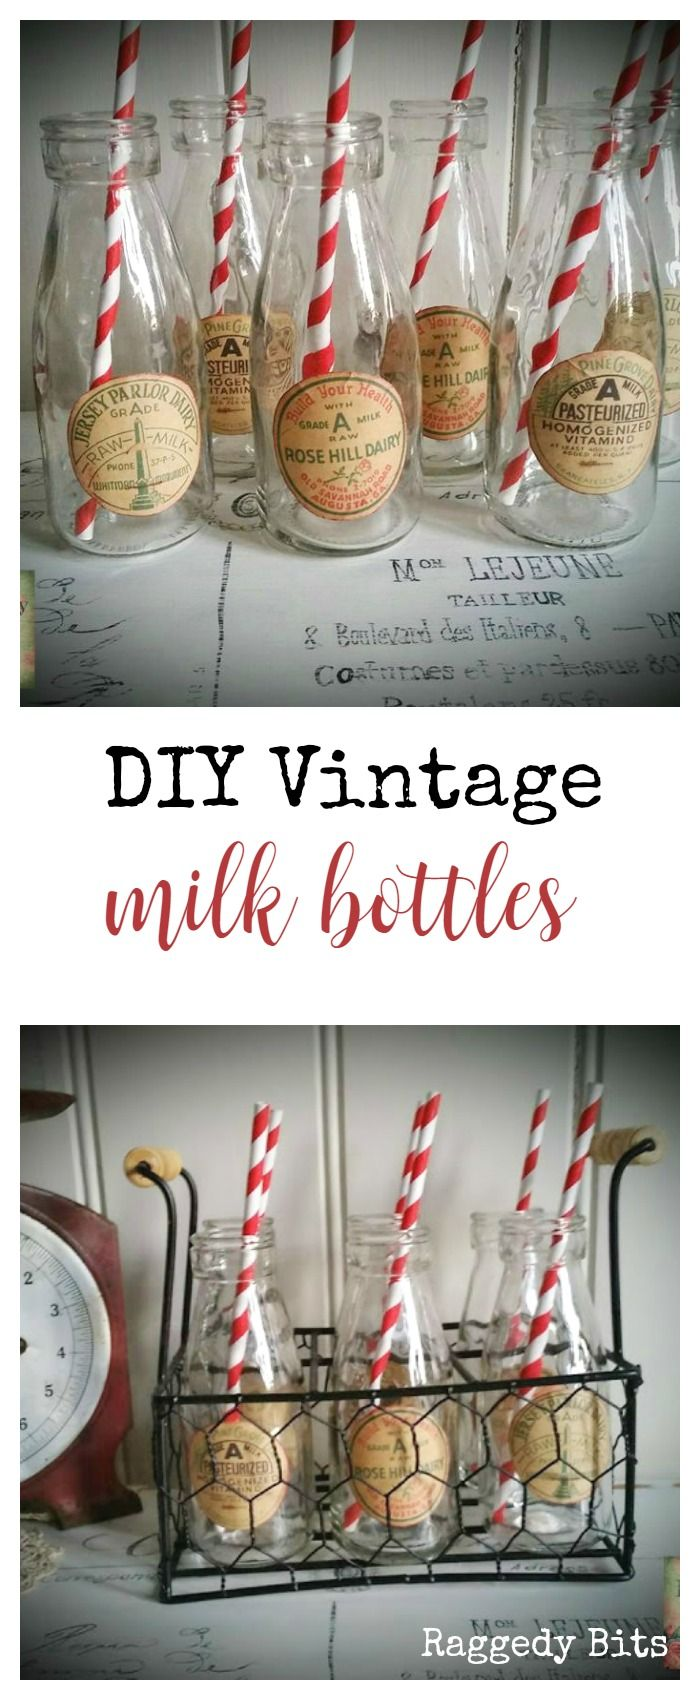 A super easy project to add some Vintage Farmhouse Charm to some plain milk bottles |  DIY Vintage Milk  Bottles | www.raggedy-bits.com